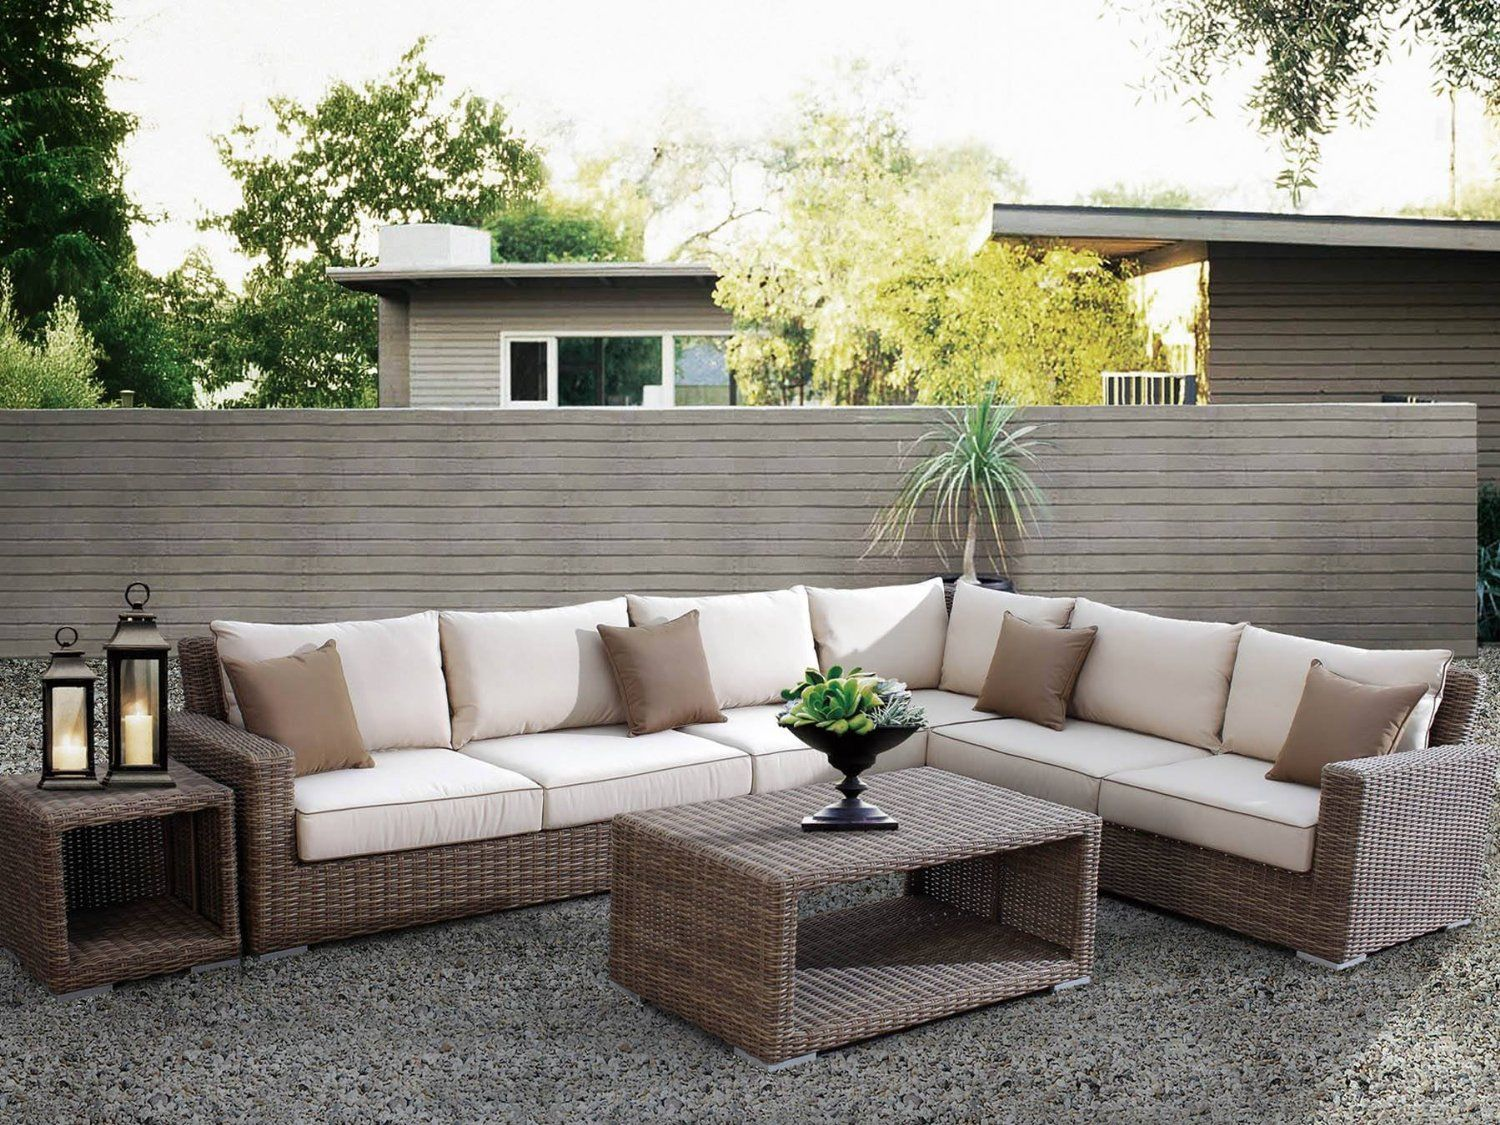 Coronado Resin Wicker Outdoor Seating Set